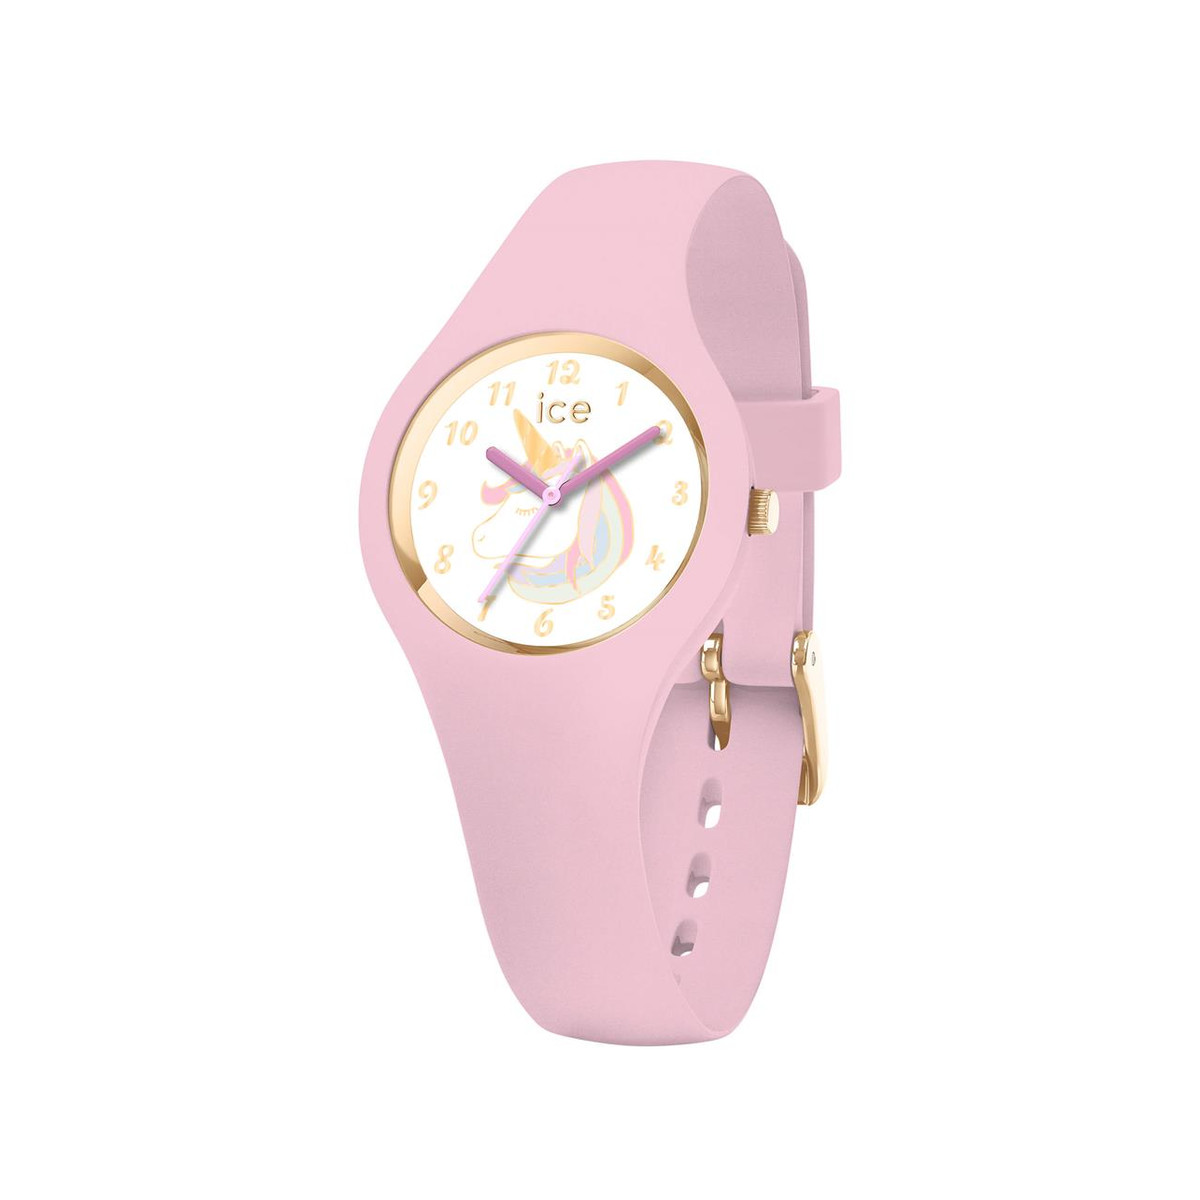 Montre Ice Watch enfant taille XS silicone rose